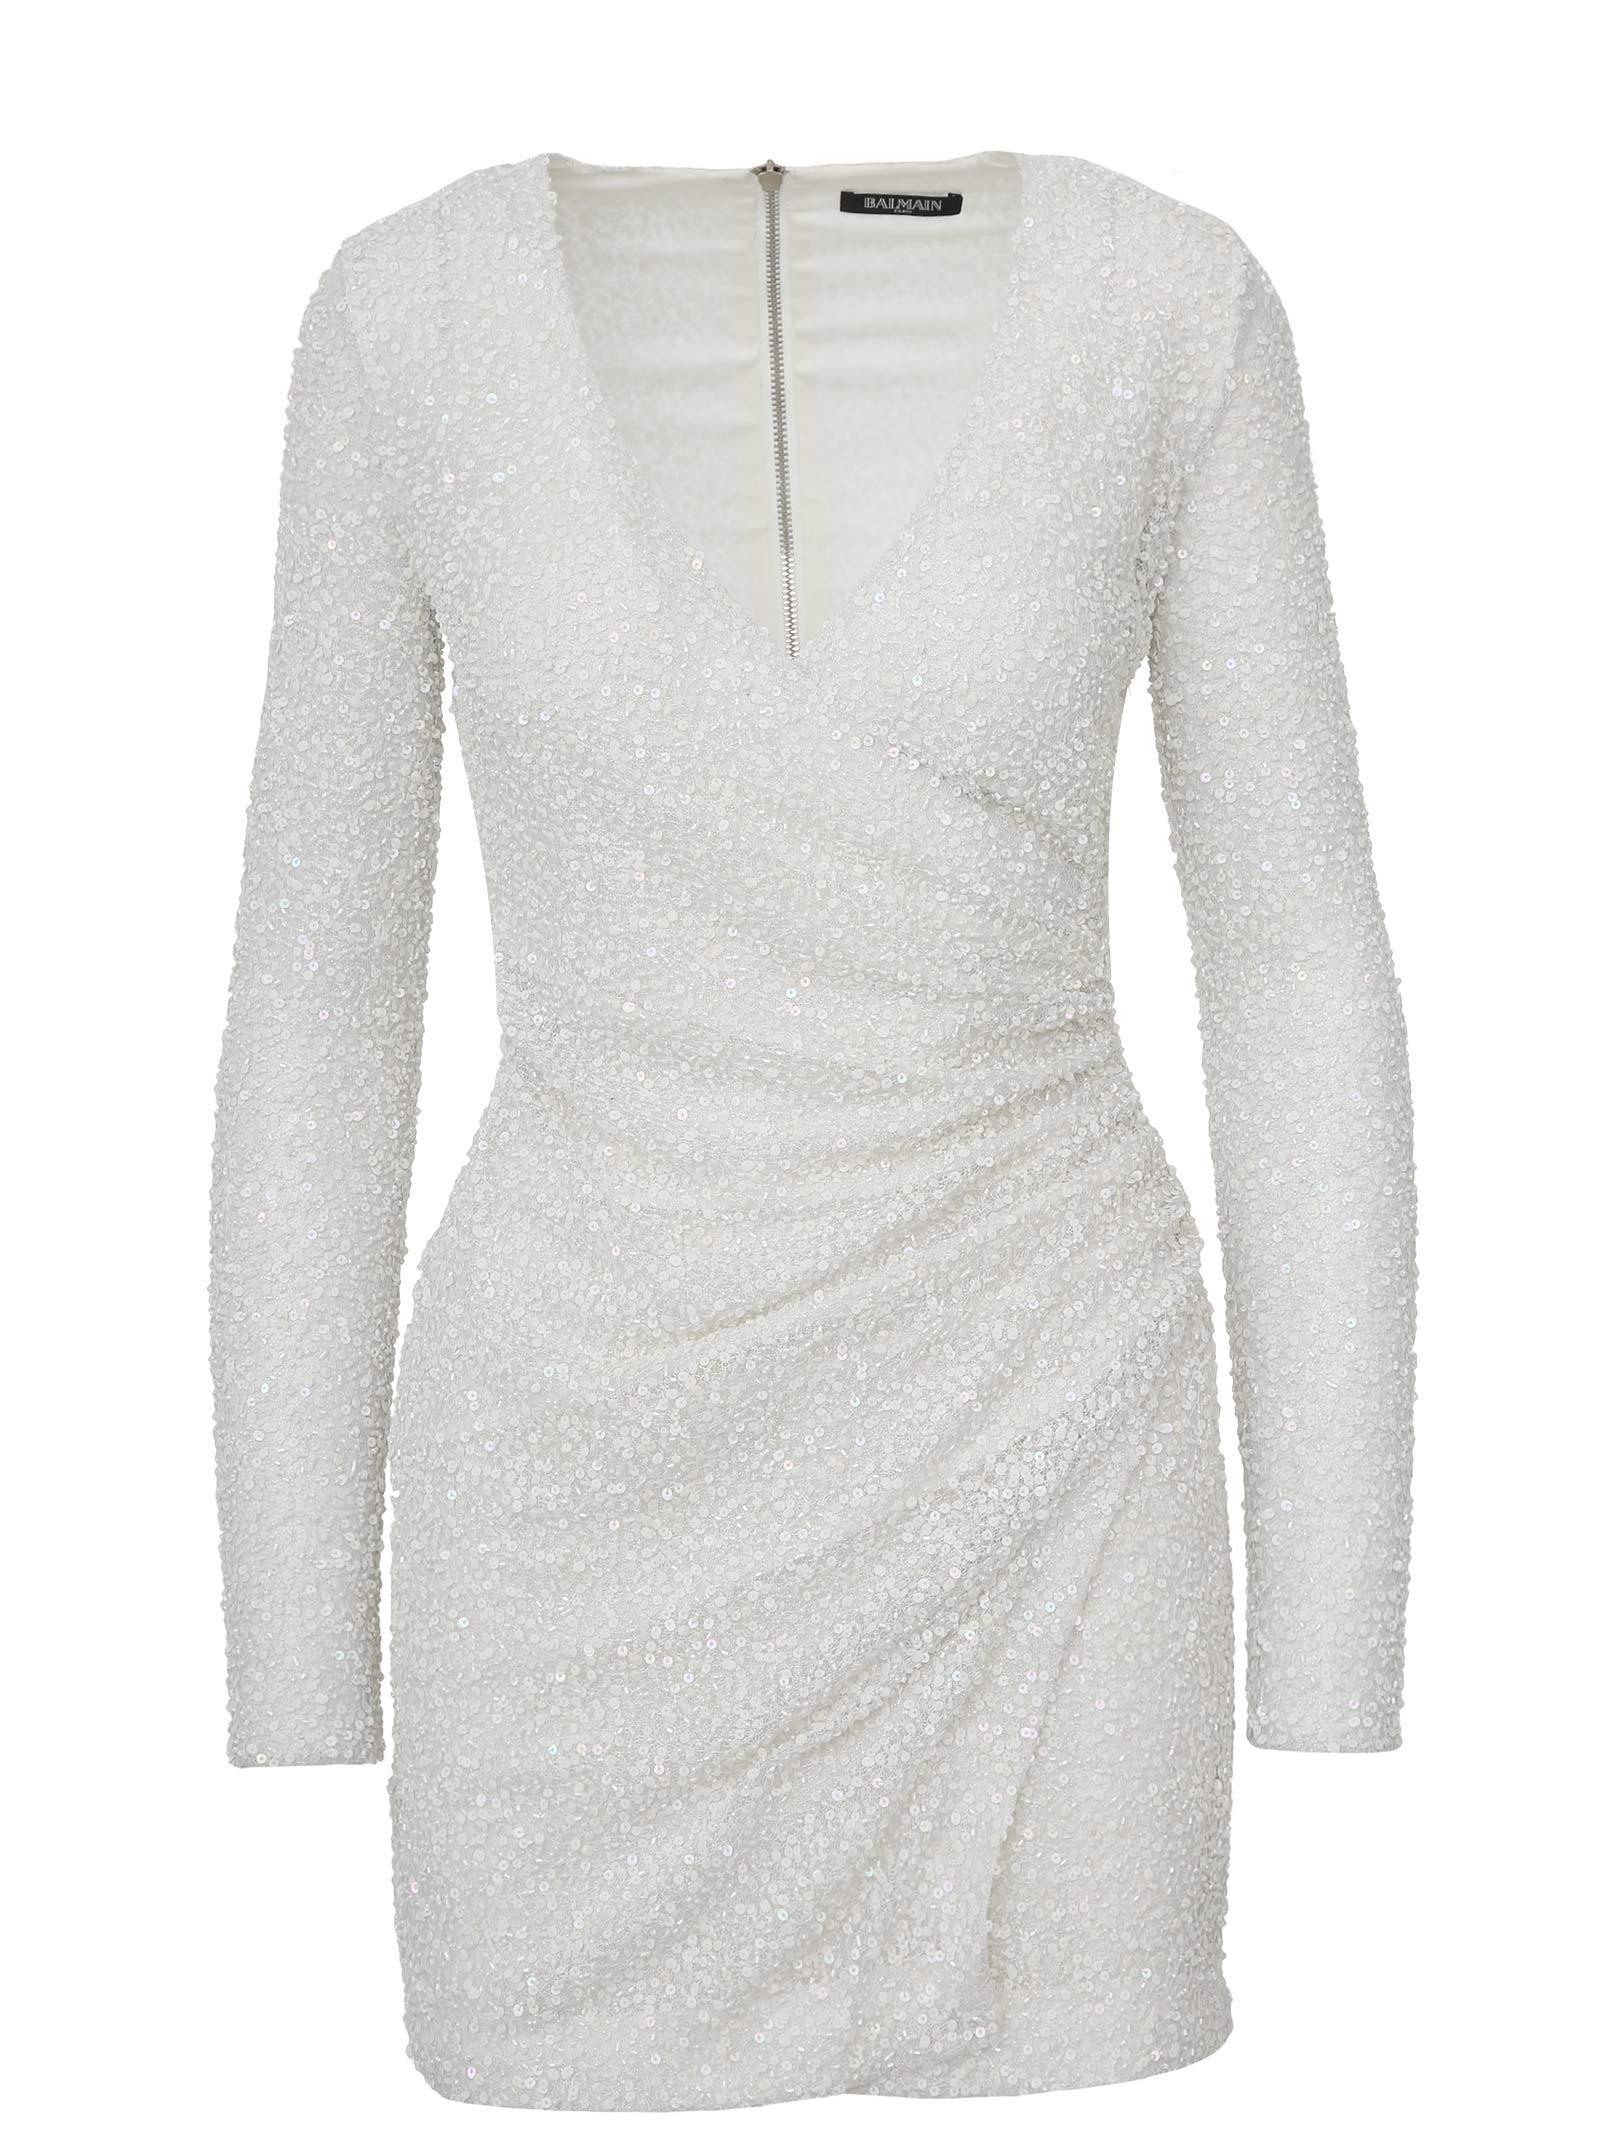 96d51e98 Balmain Balmain Paris Dress - White - 10934590 | italist